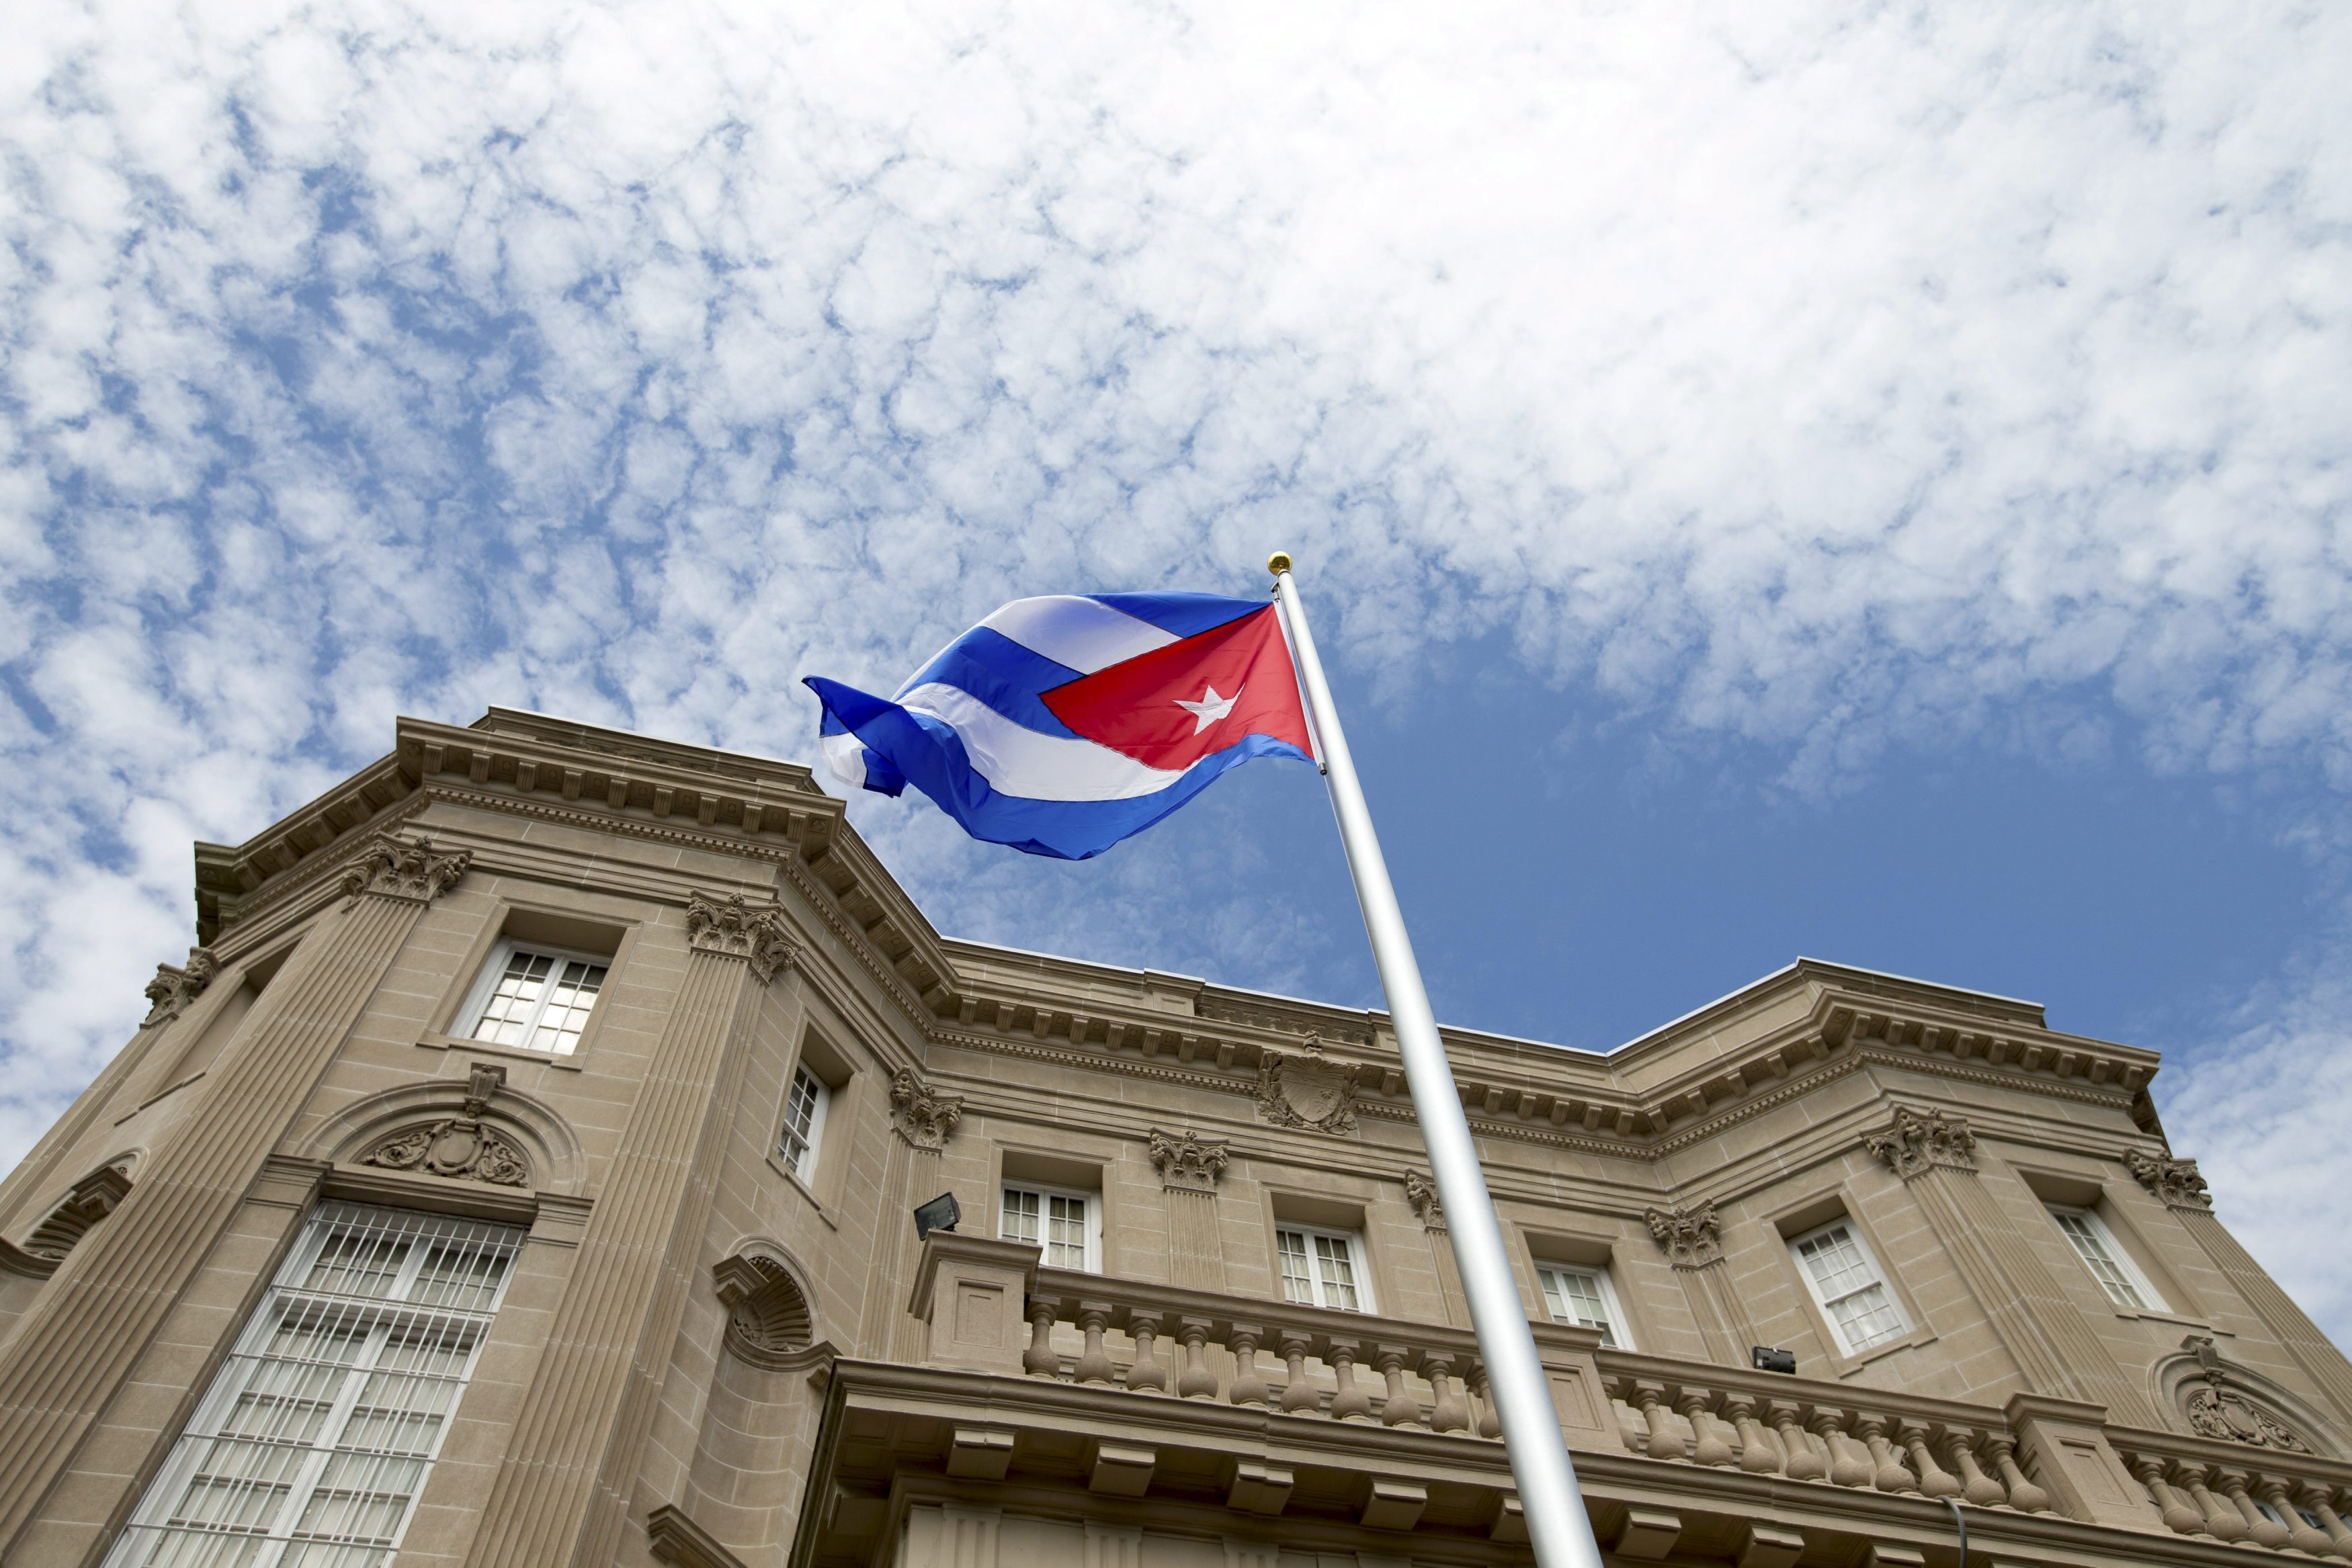 The Cuban national flag is seen raised over their new embassy in Washington, July 20, 2015. The Cuban flag was raised over Havanau2019s embassy in Washington on Monday for the first time in 54 years as the United States and Cuba formally restored relations, opening a new chapter of engagement between the former Cold War foes.   REUTERS/Andrew Harnik/Pool      TPX IMAGES OF THE DAY